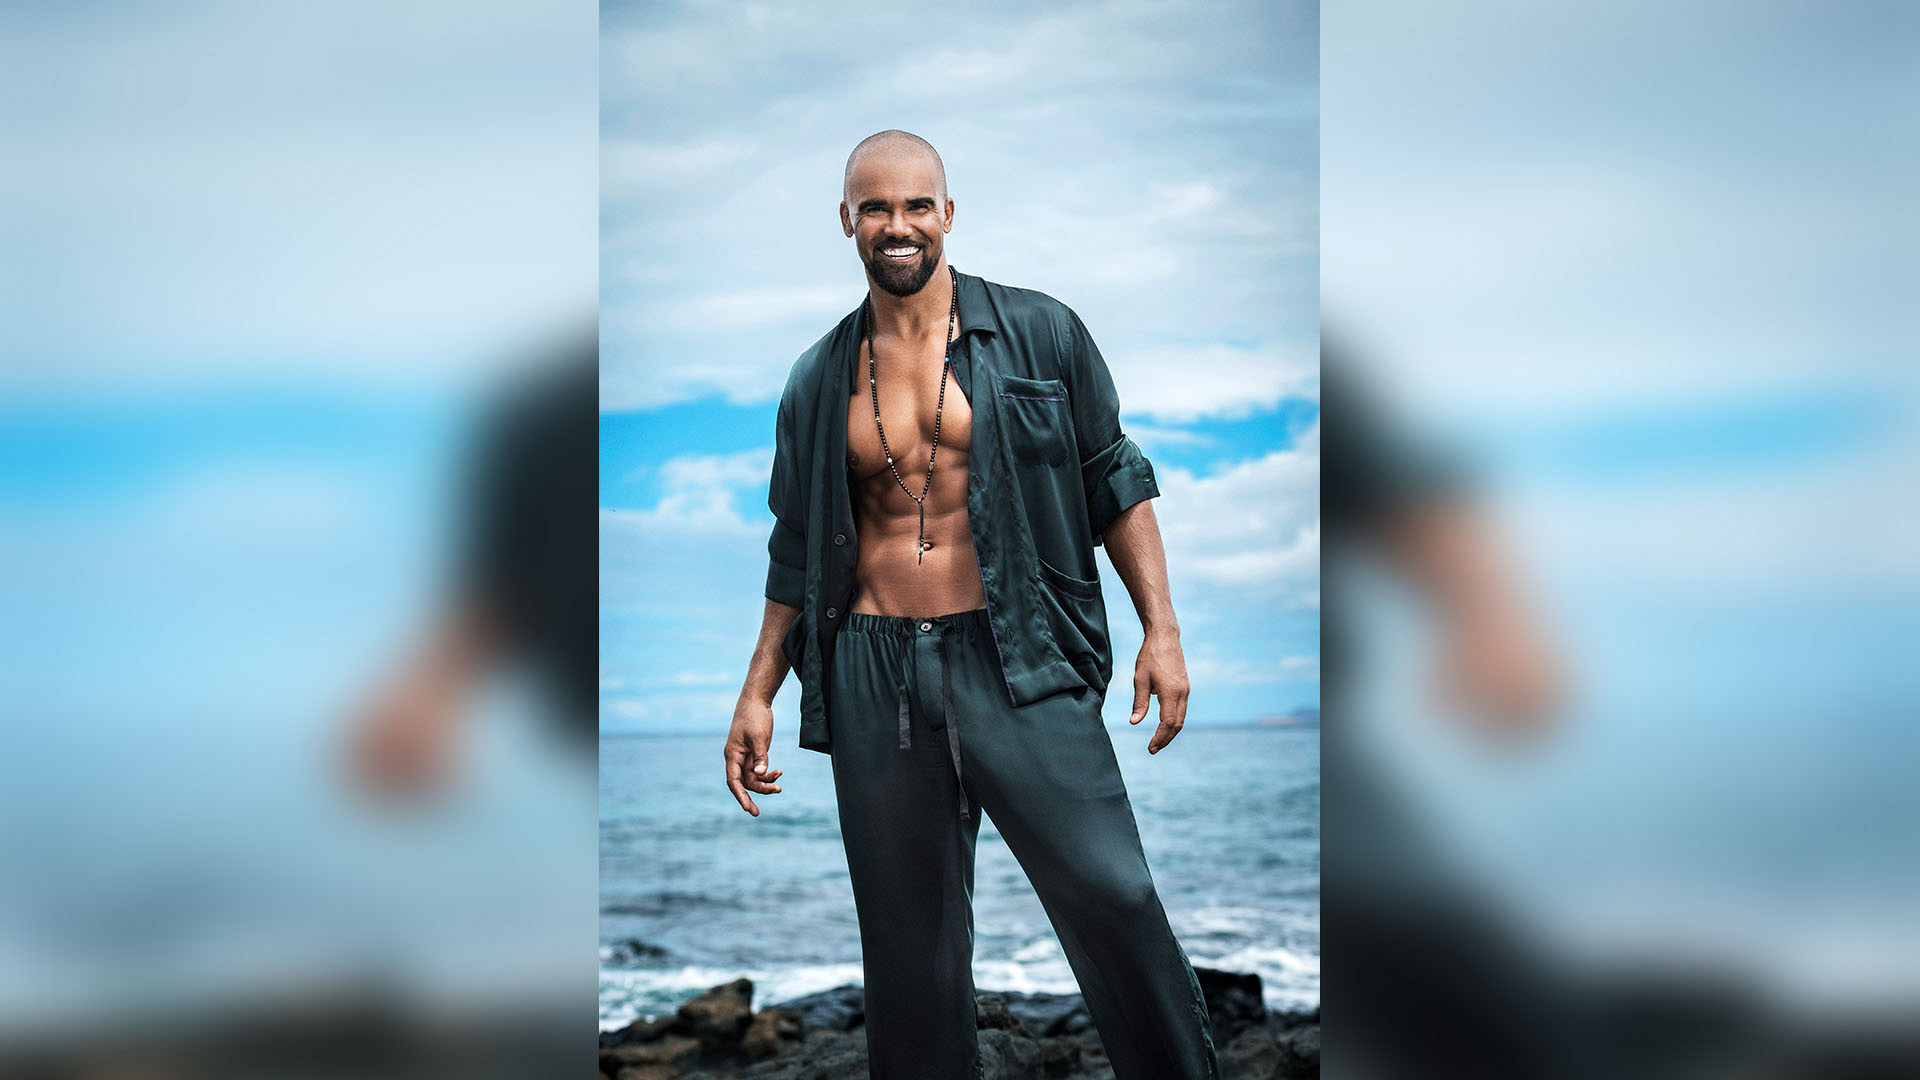 Gorgeous grins and good times on Shemar Moore's hot Hawaiian photo shoot